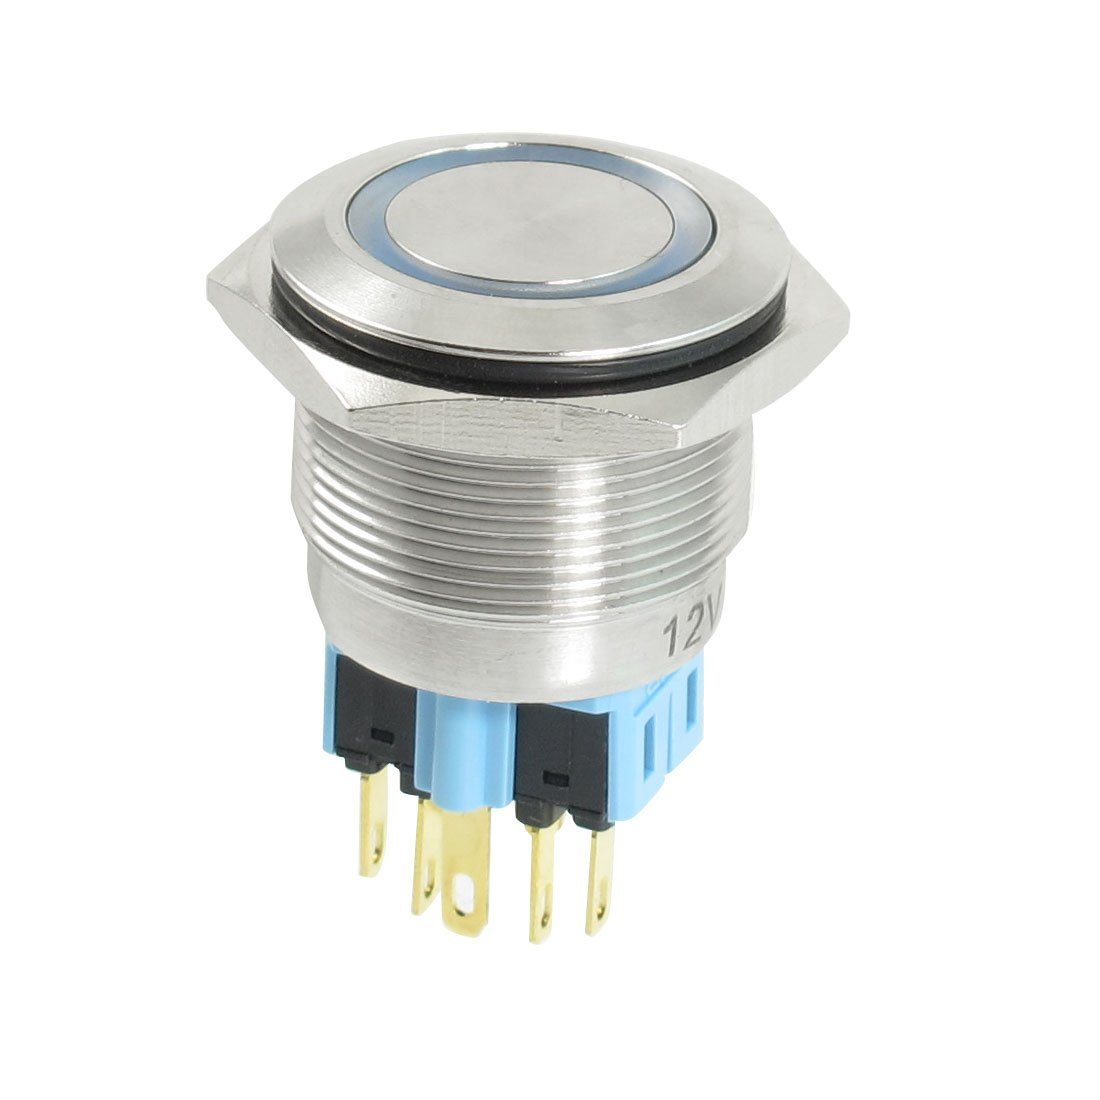 Uxcell a13040500ux0158 uxcell DC 12V Blue LED 25mm Stainless Steel Locking Push Button Switch DPDT